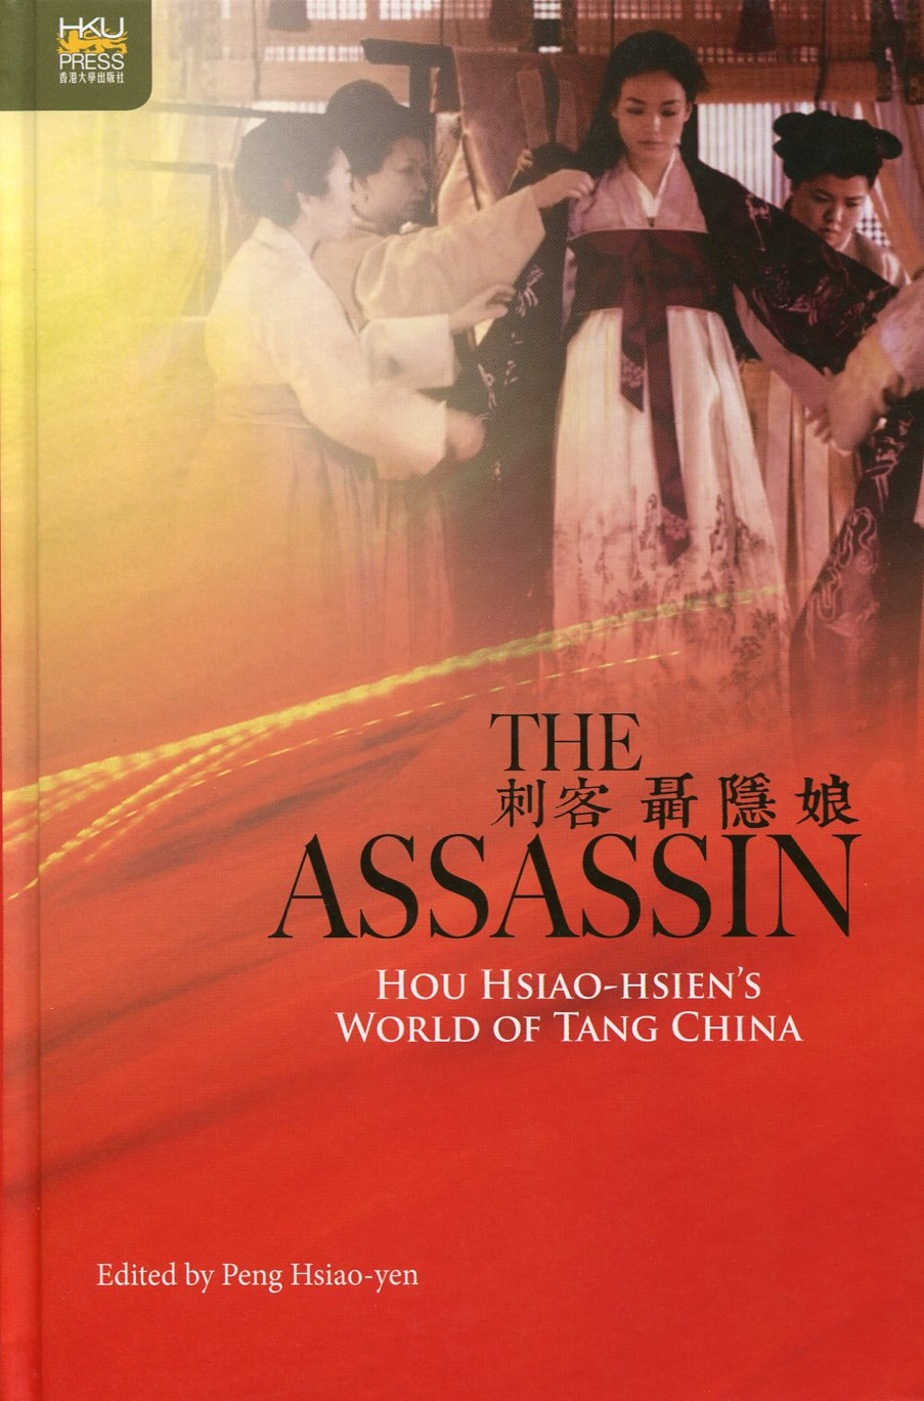 The Assassin:Hou Hsiao-hsien's World of Tang China